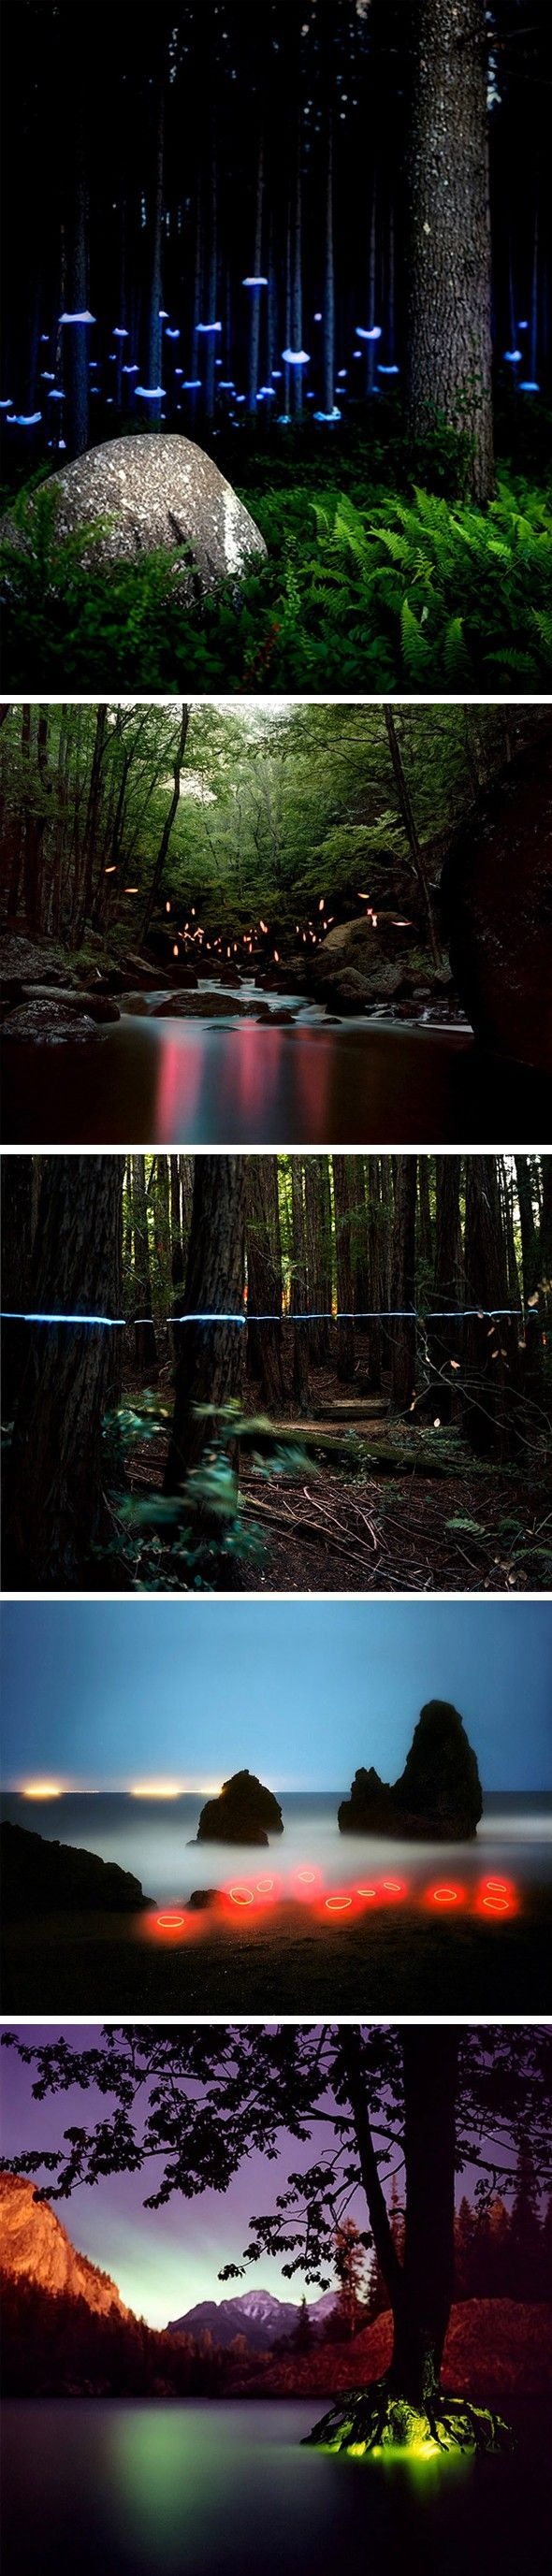 Installations lumineuses par Barry Underwood - Journal du Design